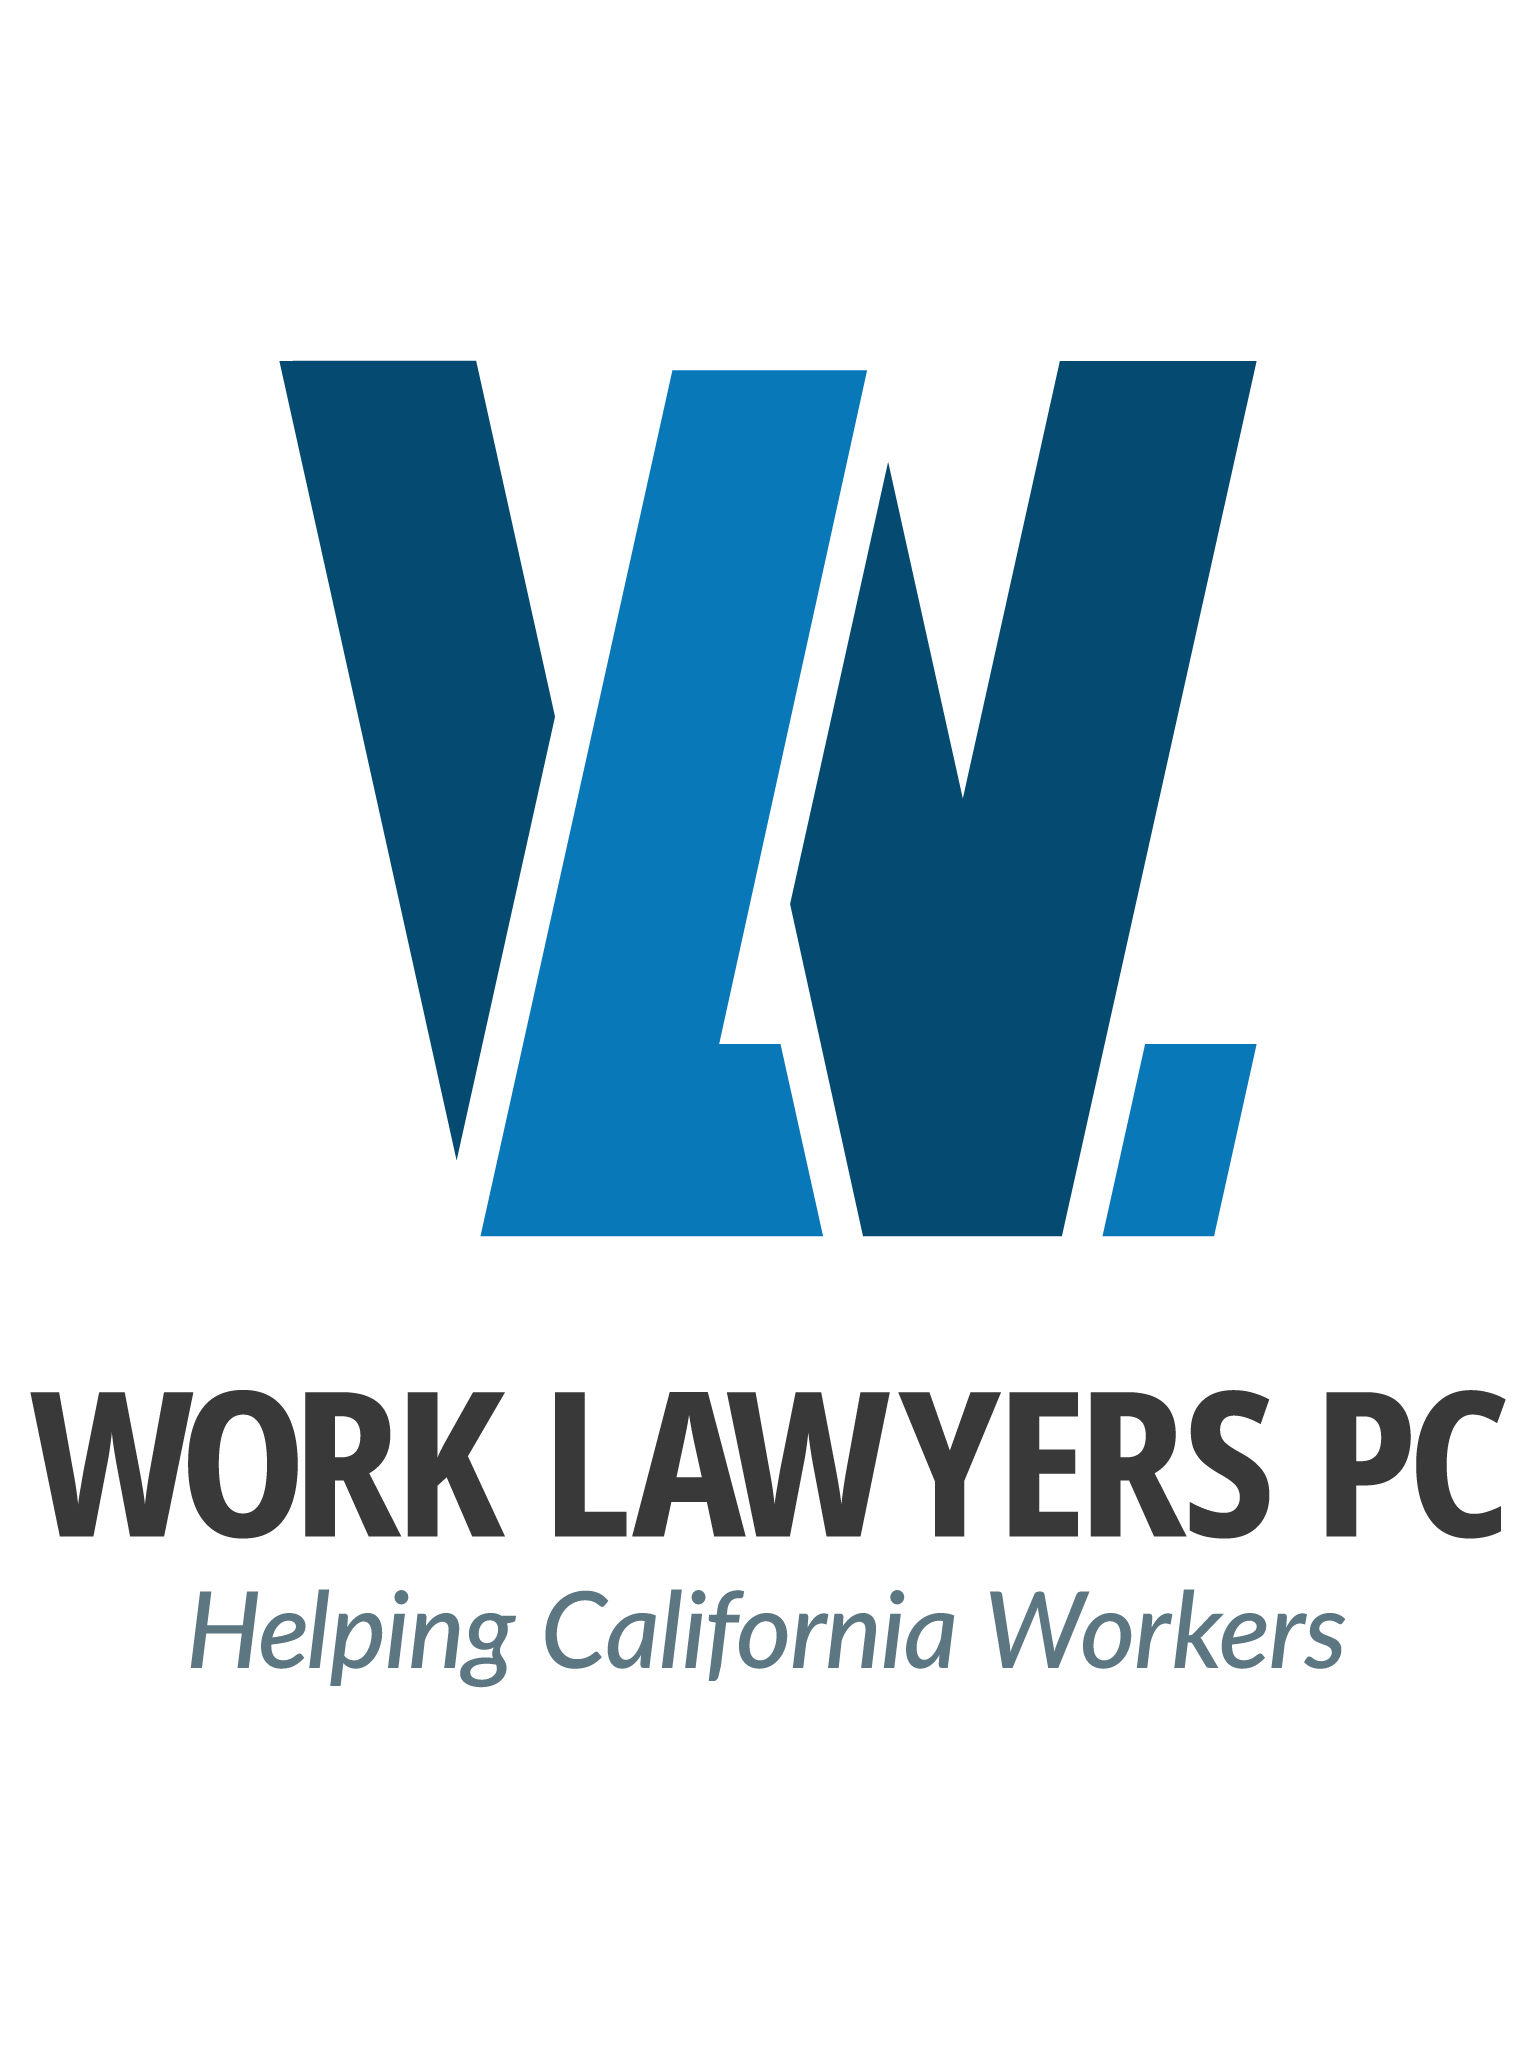 Work Lawyers PC